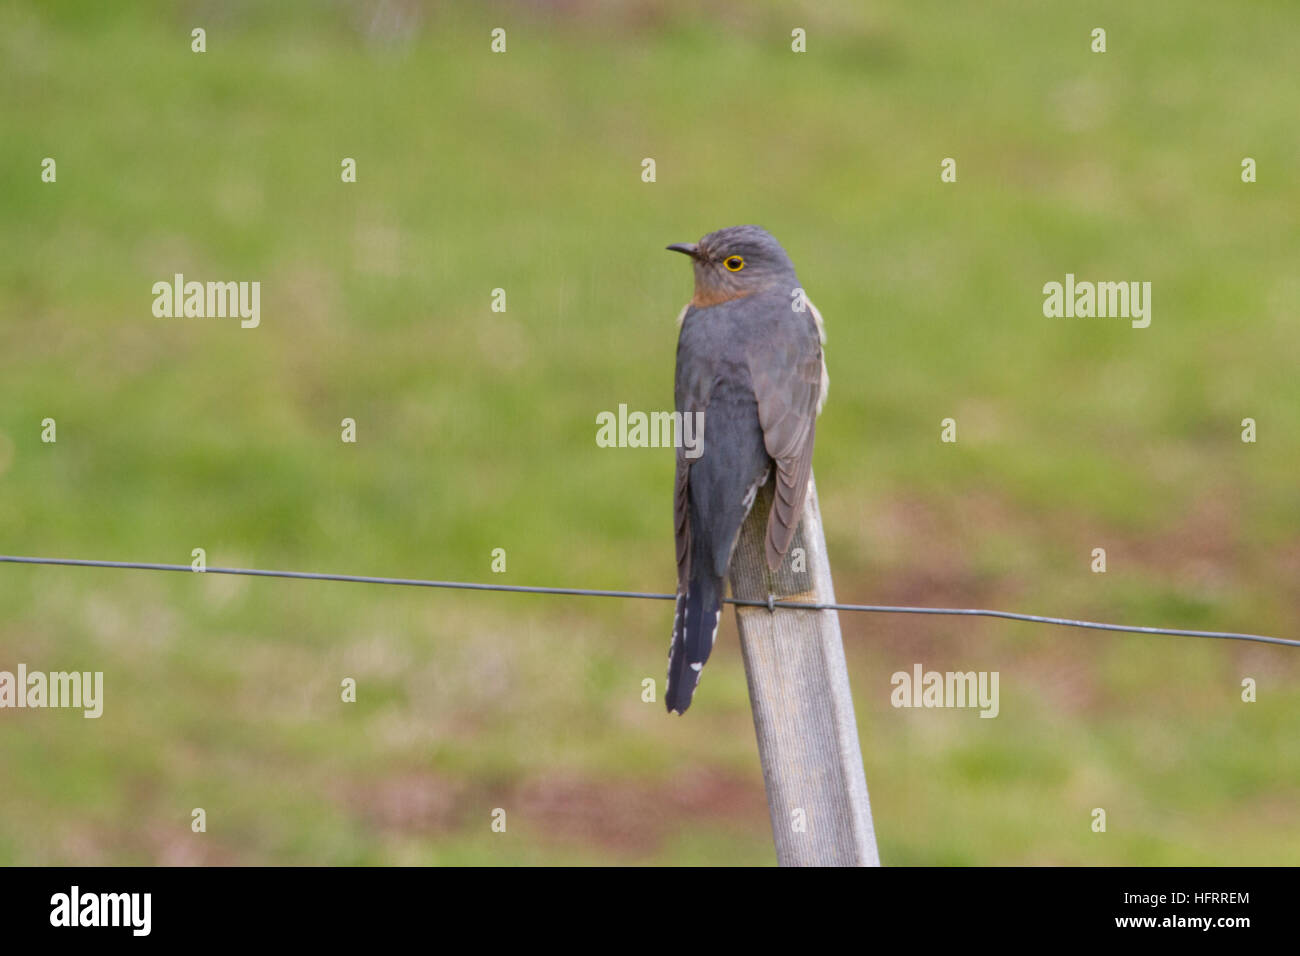 Fan-tailed Cuckoo (Cacomantis flabelliformis) perched on a post Stock Photo